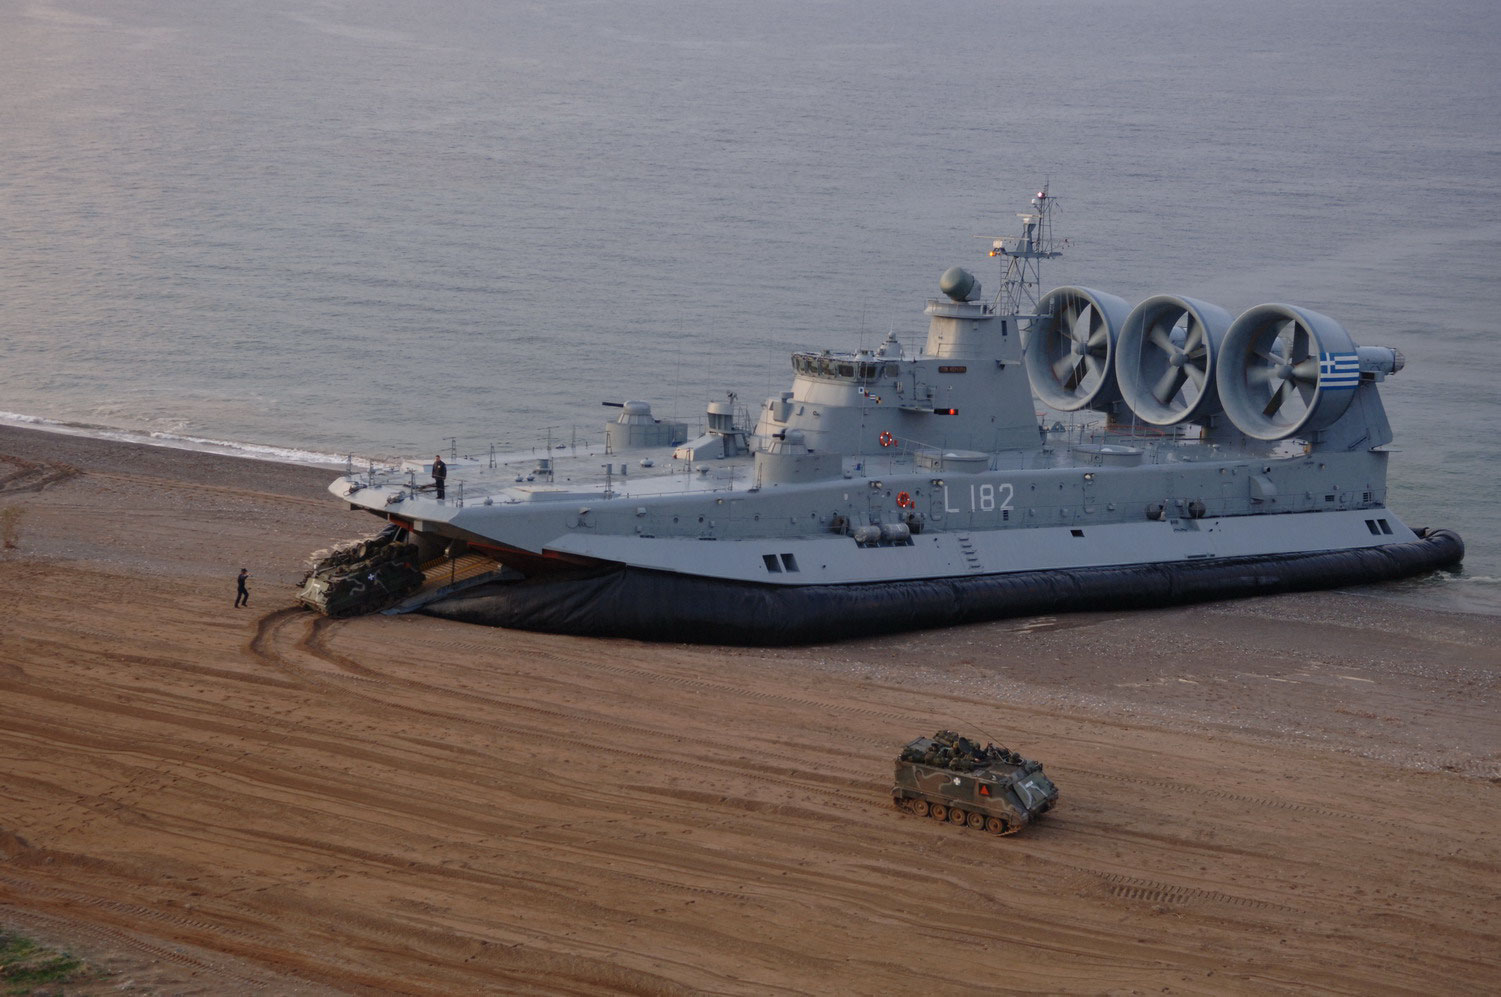 Experts dismiss pla navy 39 s landing craft from ukraine as for Military landing craft for sale